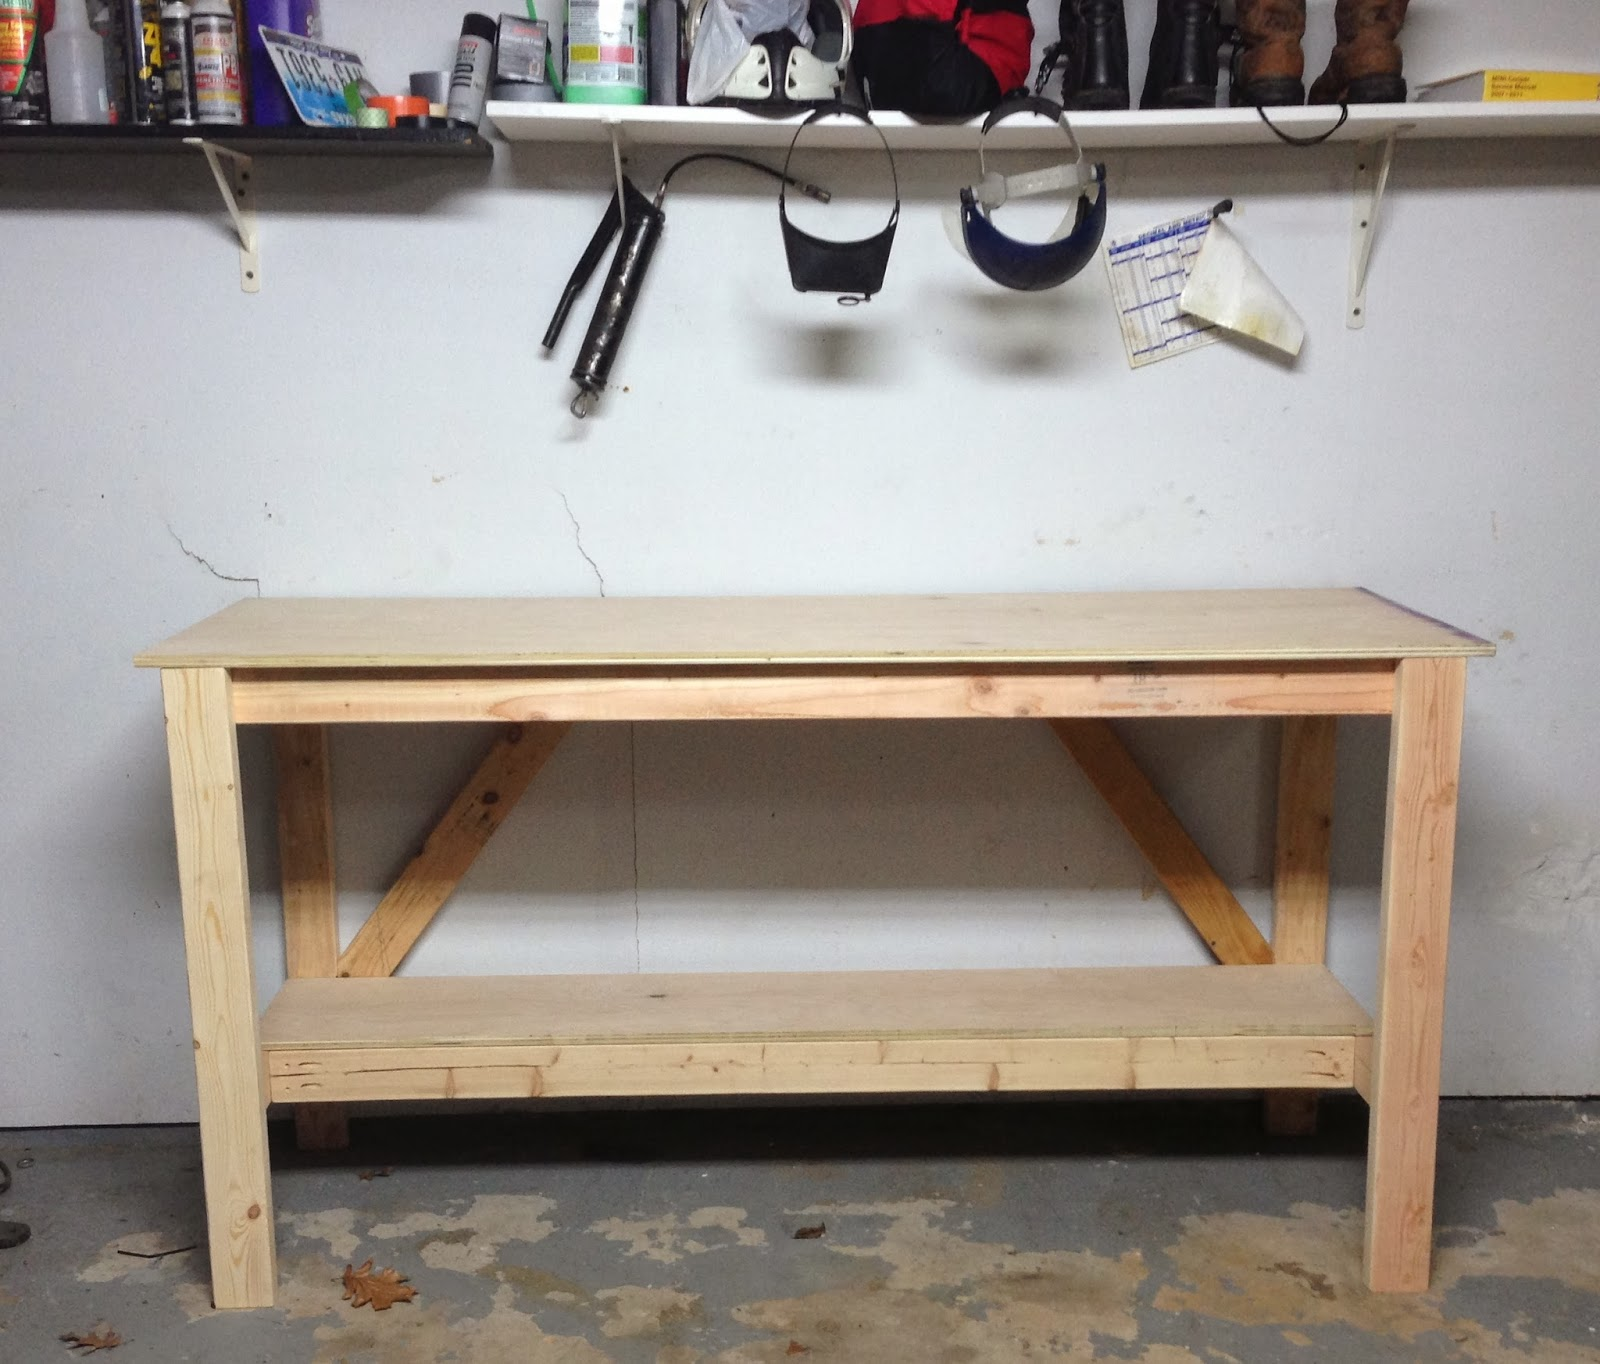 Wilker Do's: DIY Workbench